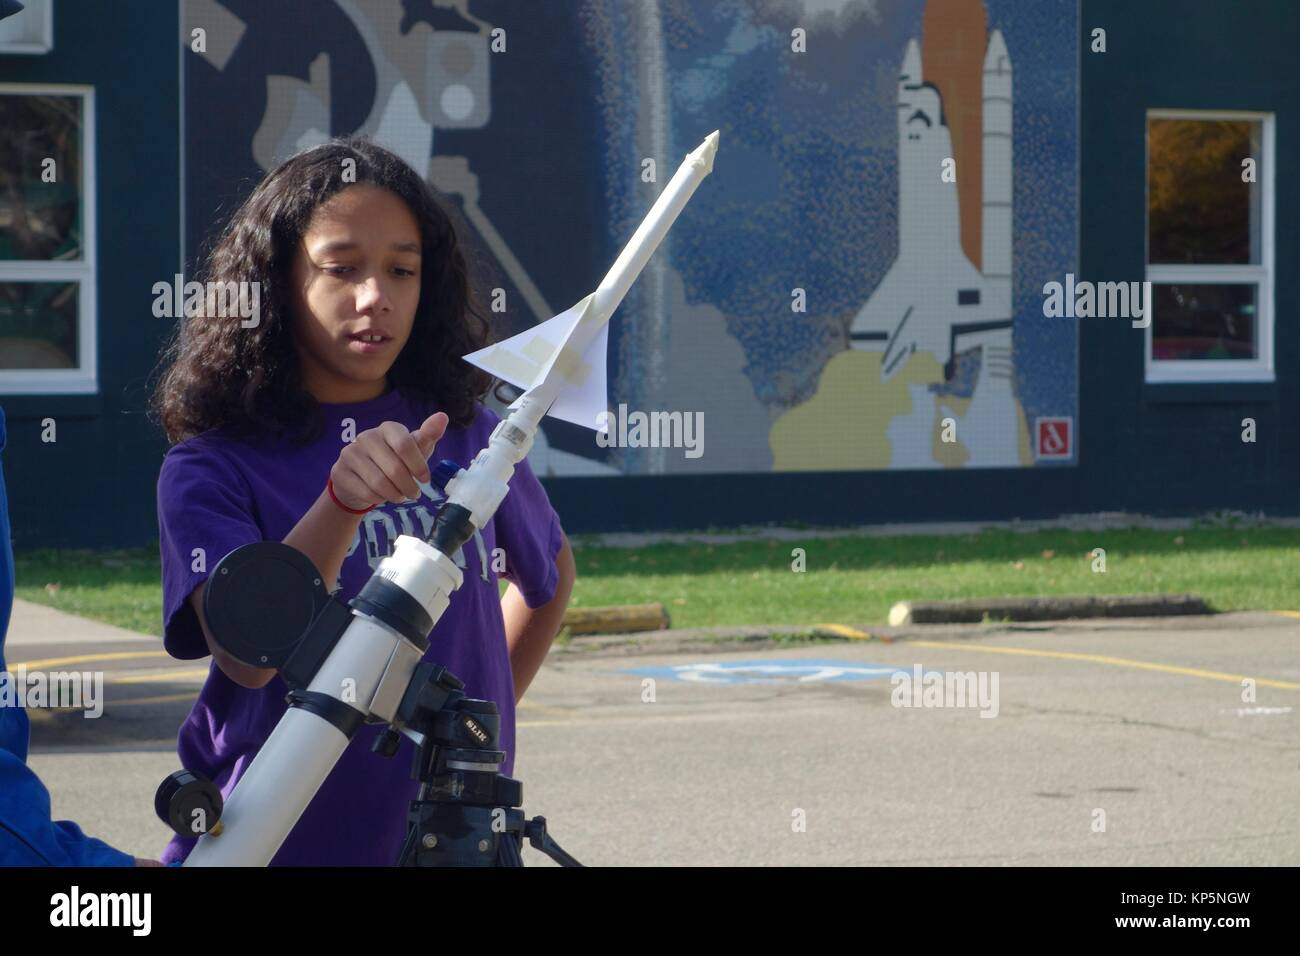 6th Grade Girl Preparing to Launch Paper Rocket, Challenger Learning Center, Allegany, New York, United States. - Stock Image